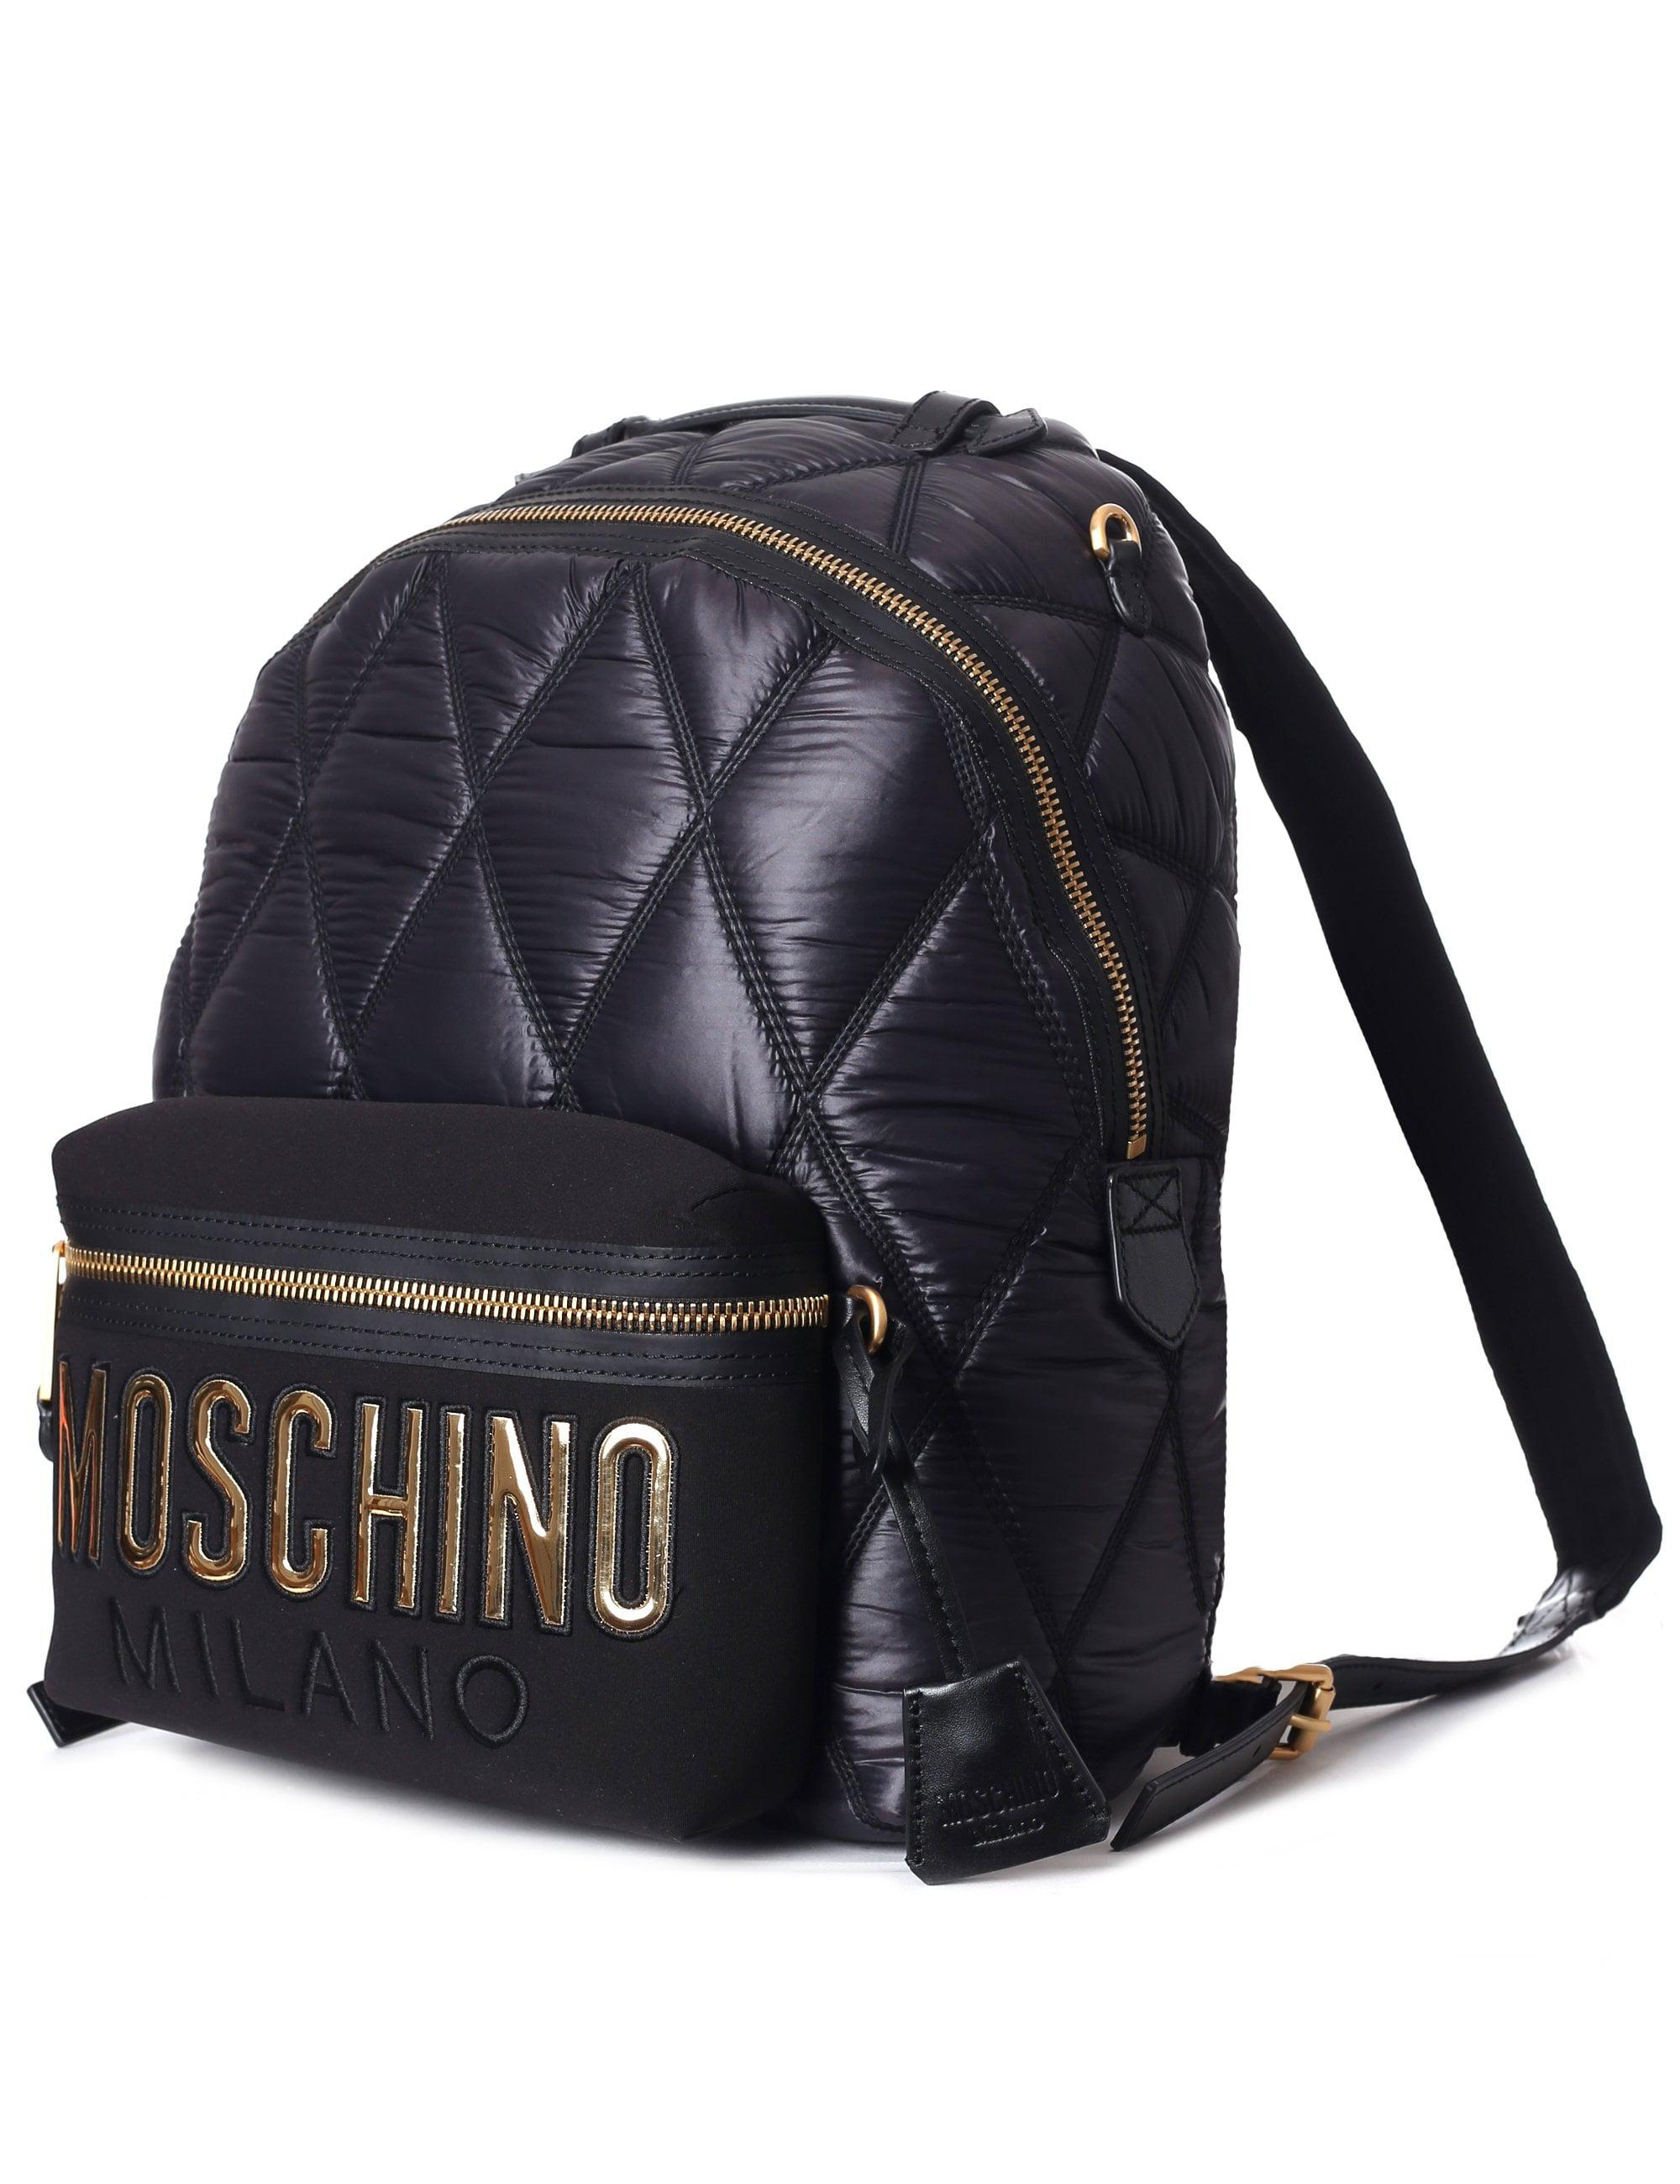 53f5cda911 Moschino Couture Women s Quilted Logo Backpack Black in Black - Lyst